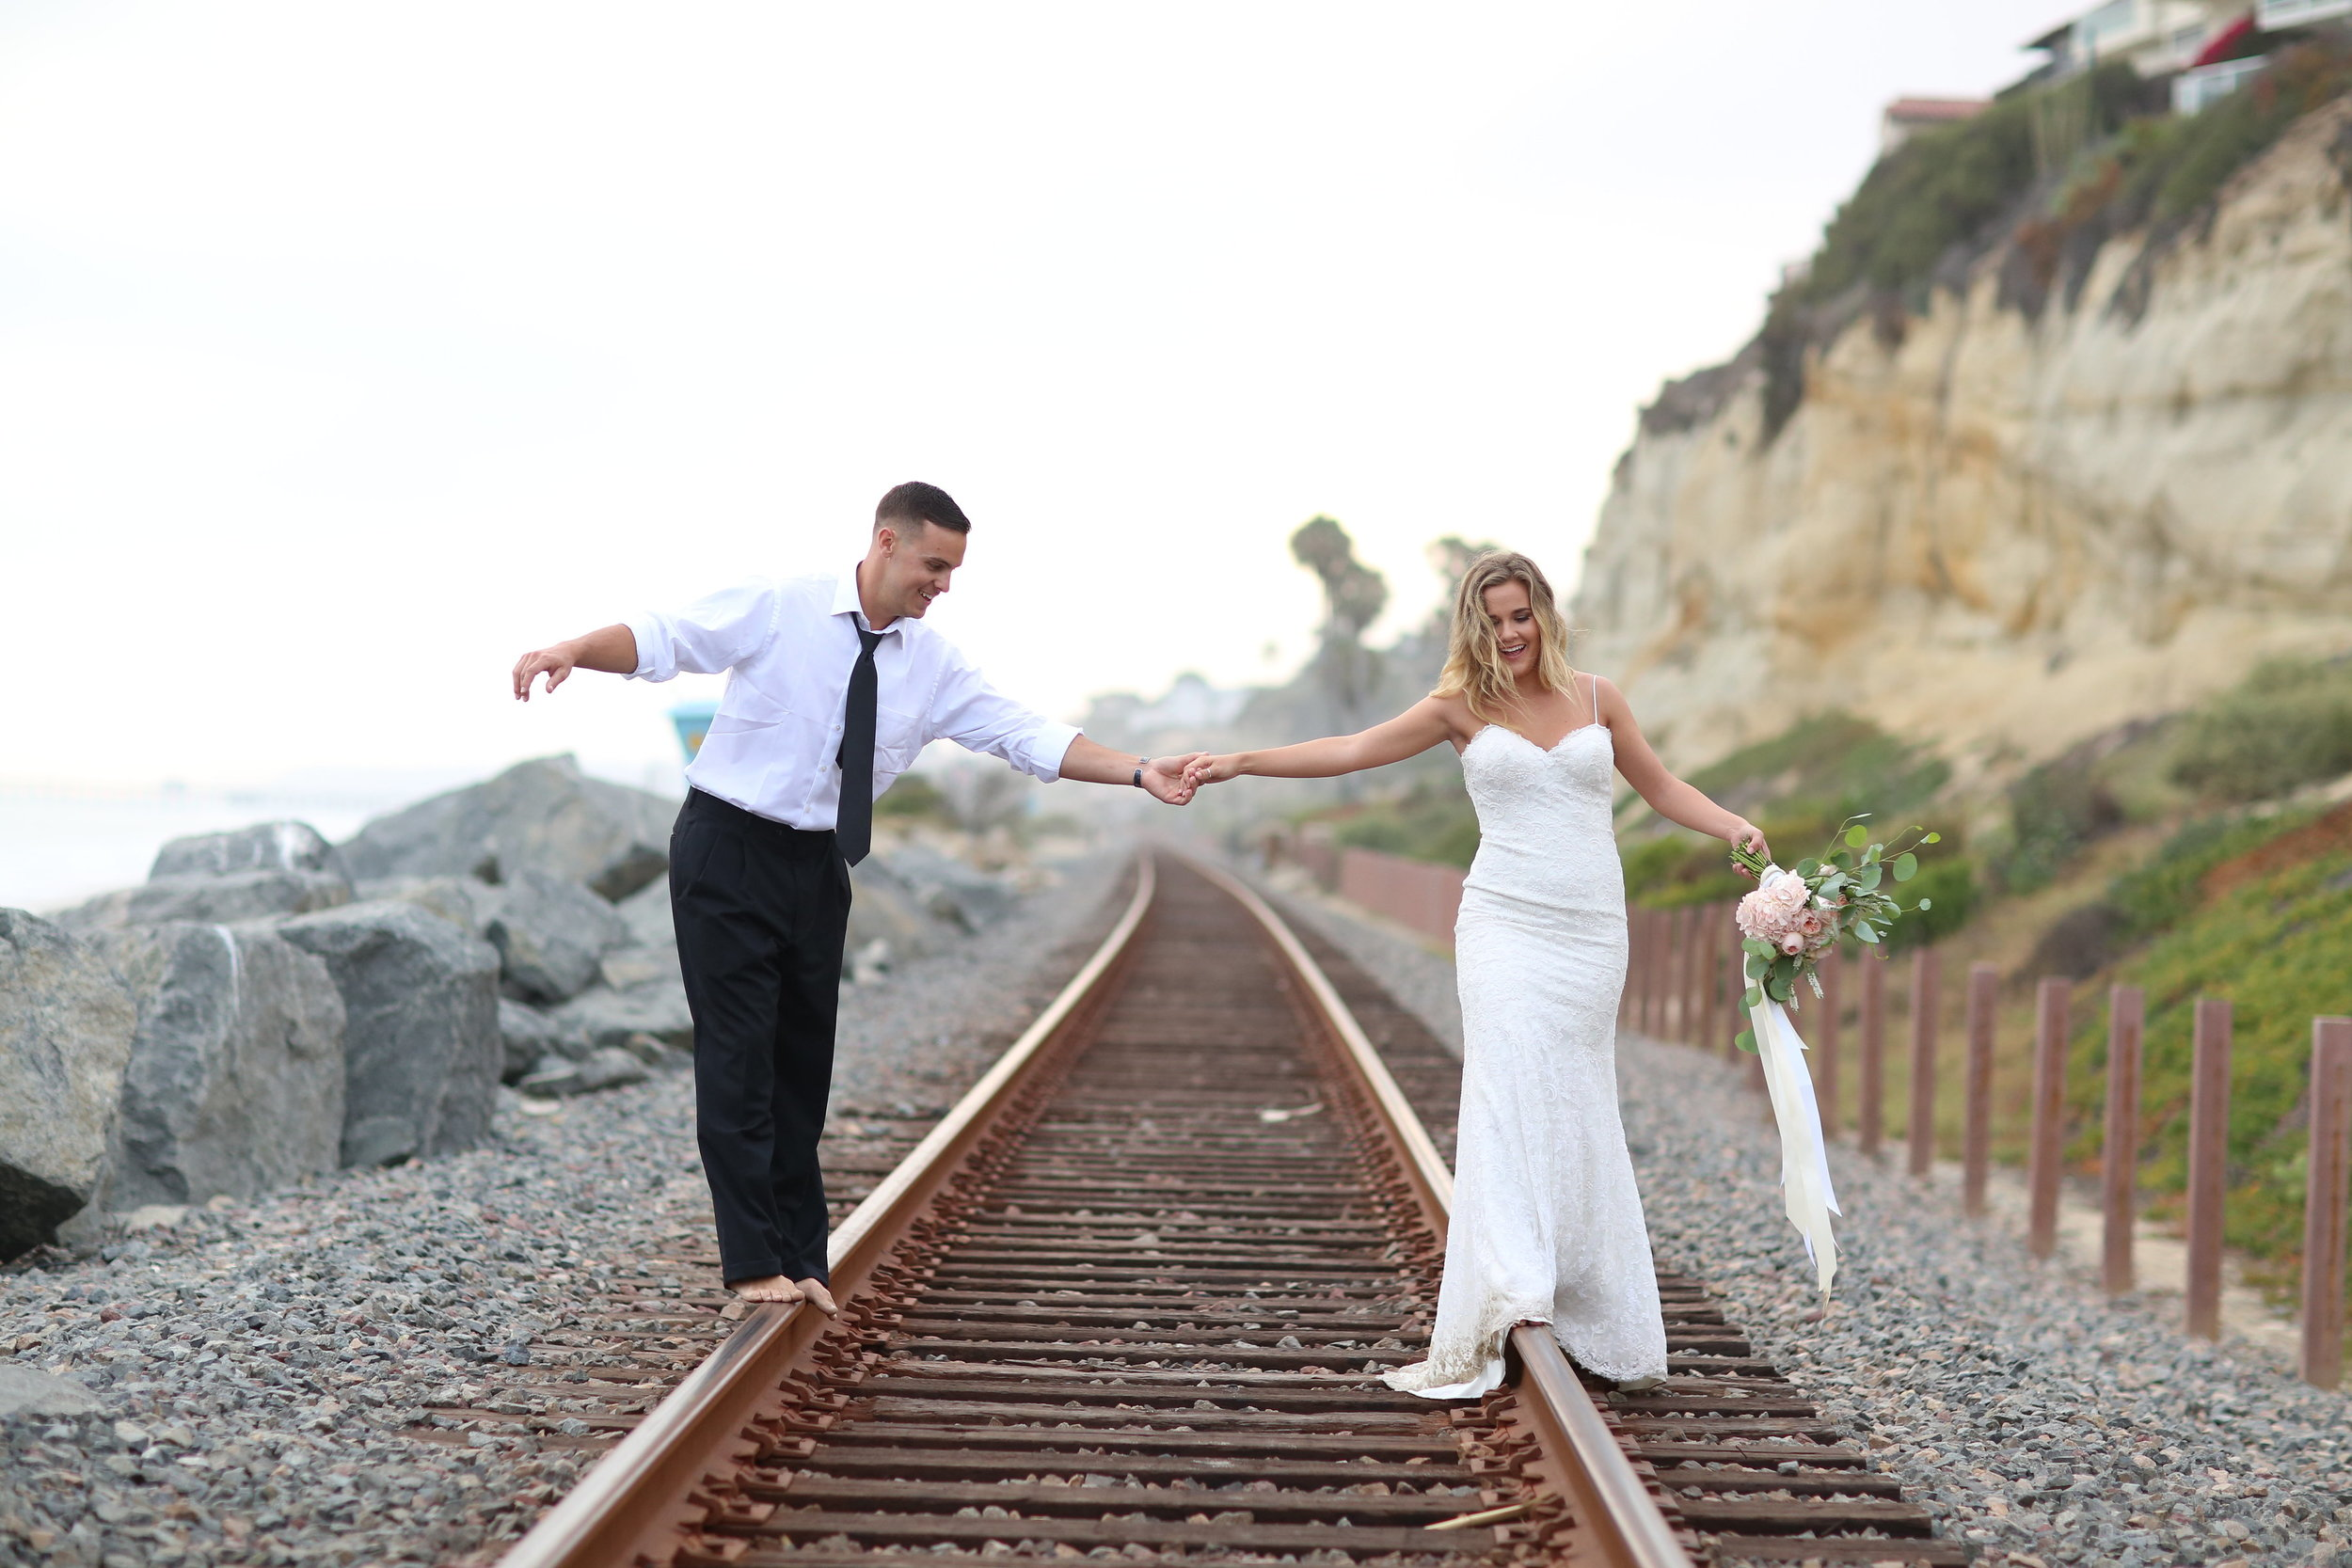 The Comparison Game | Social Media and Marriage